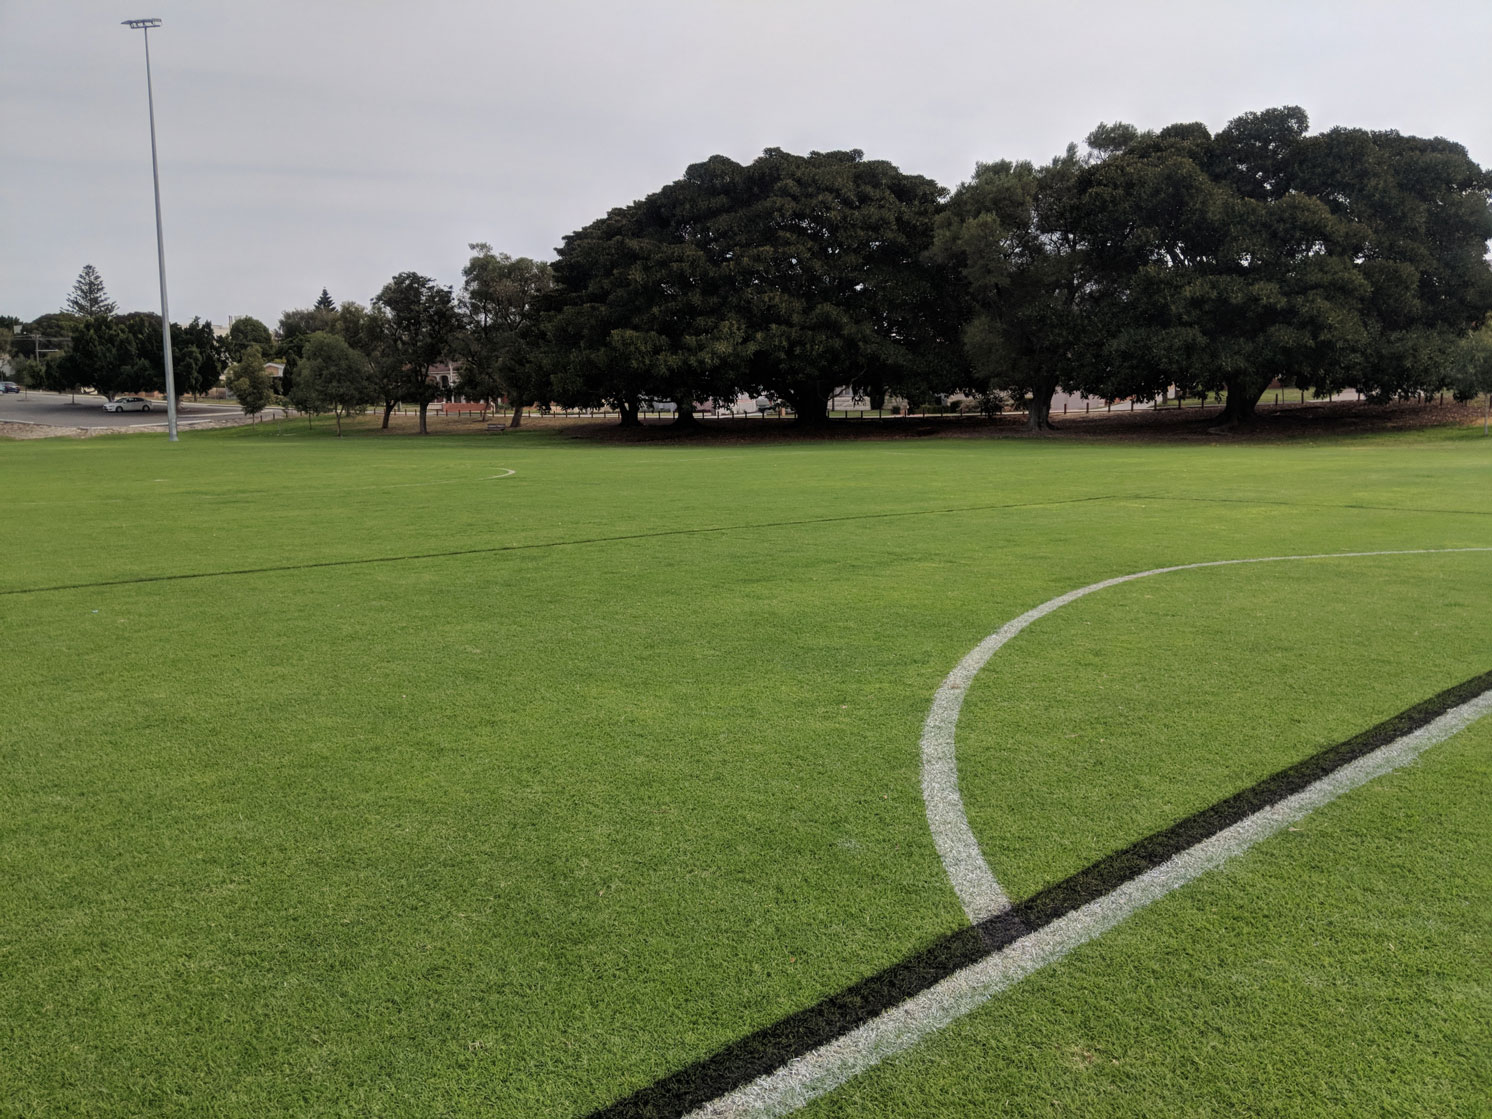 Soccer field with overlapping lines black and white paint line marking